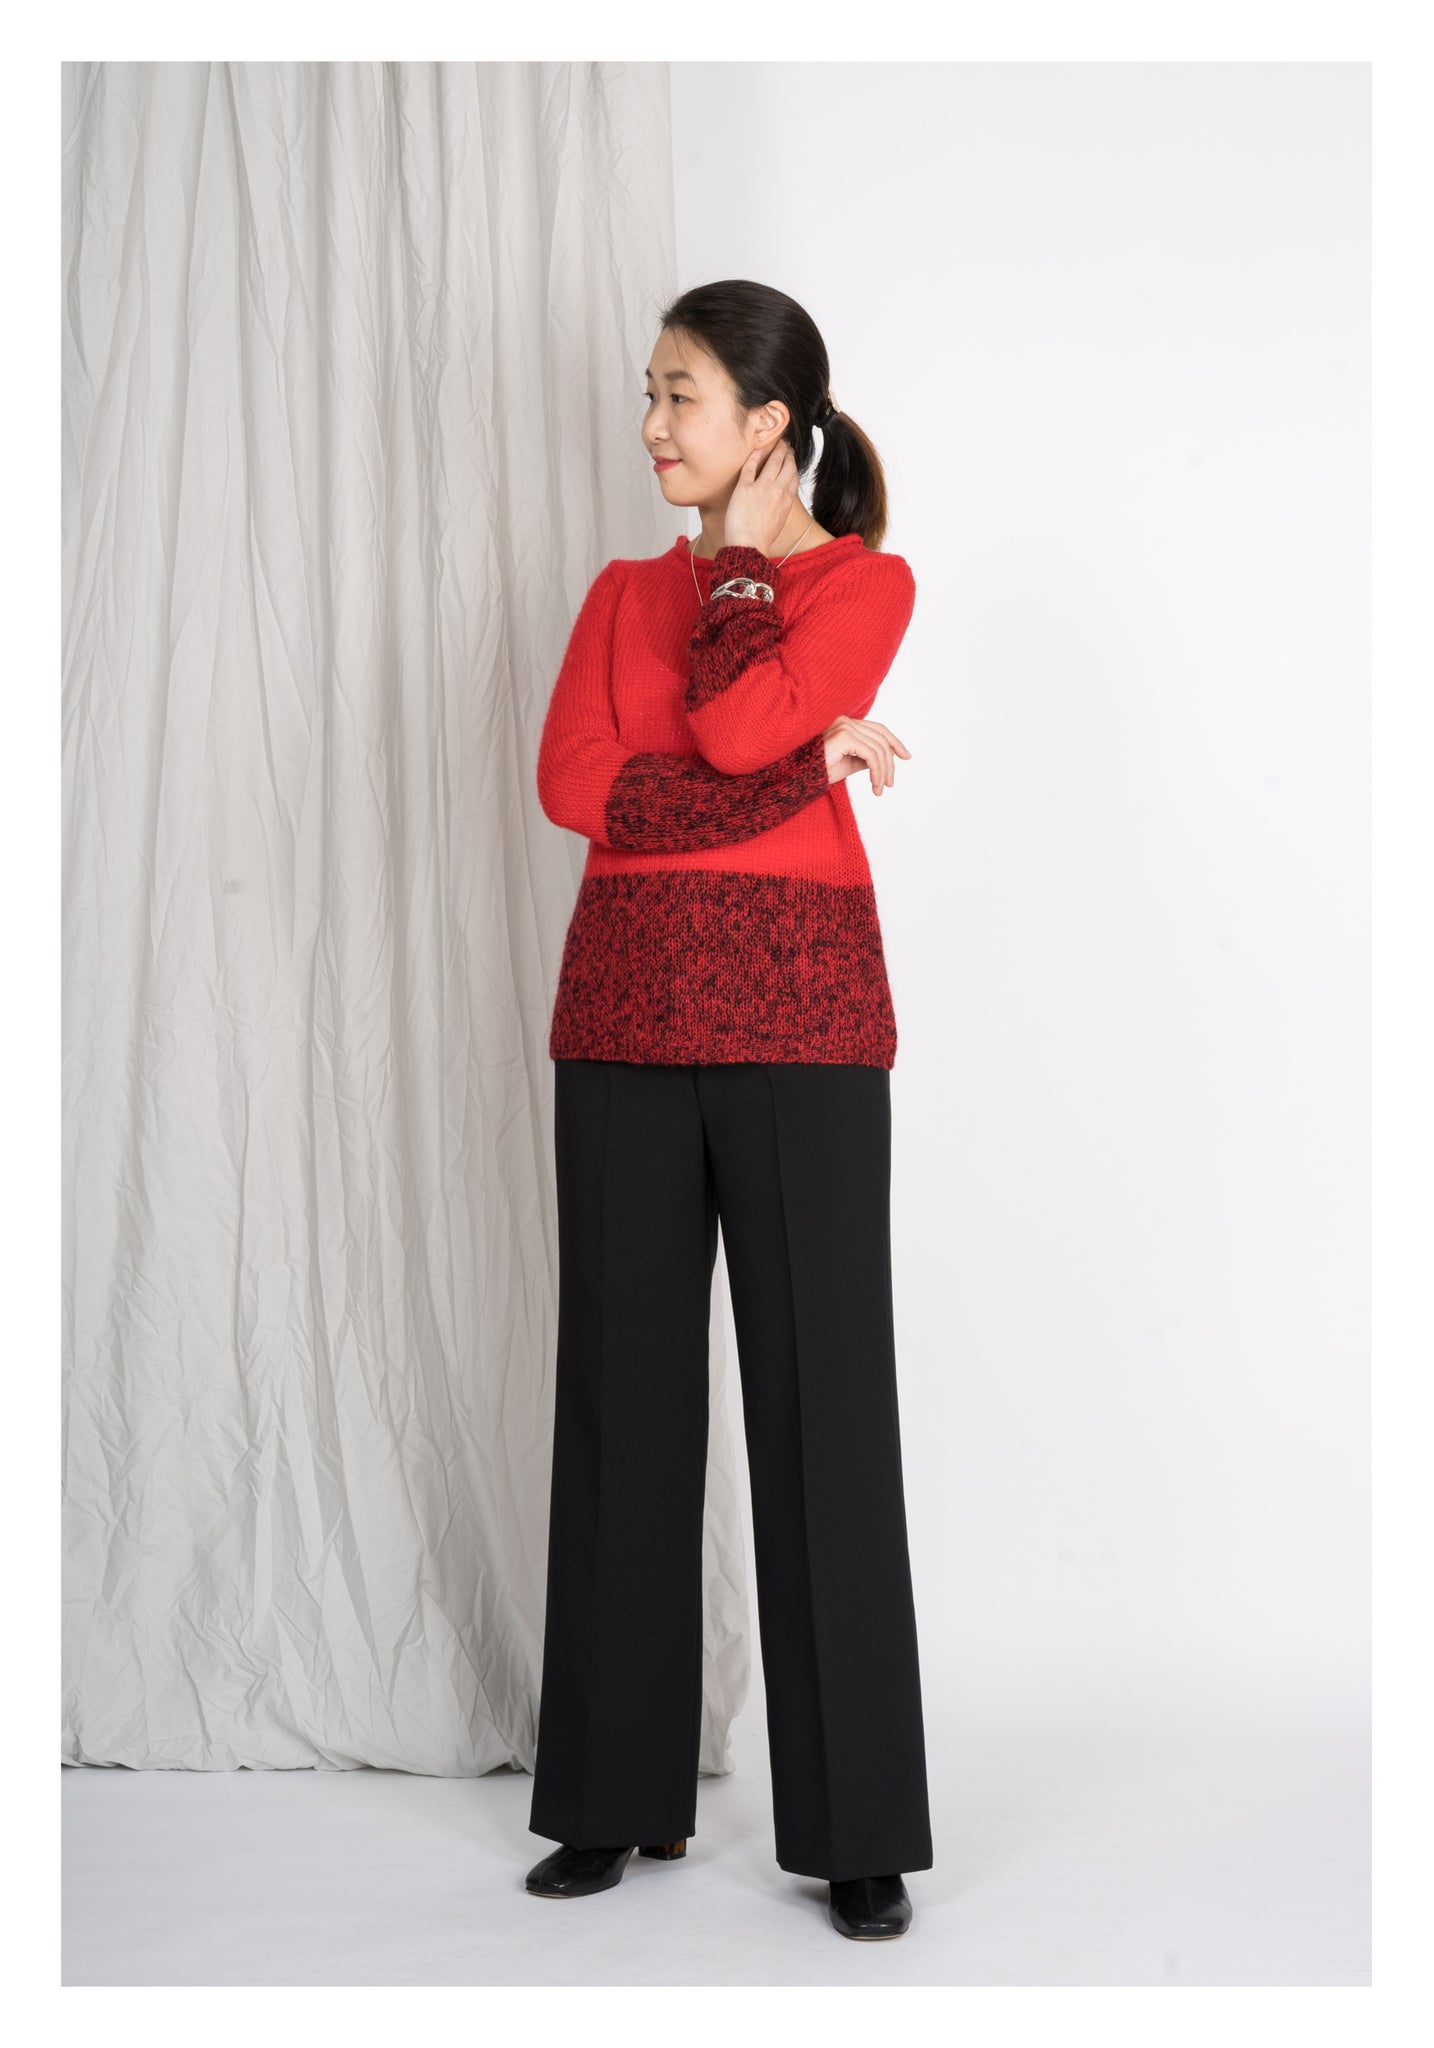 Red and Mixed Colour Knit Top - whoami